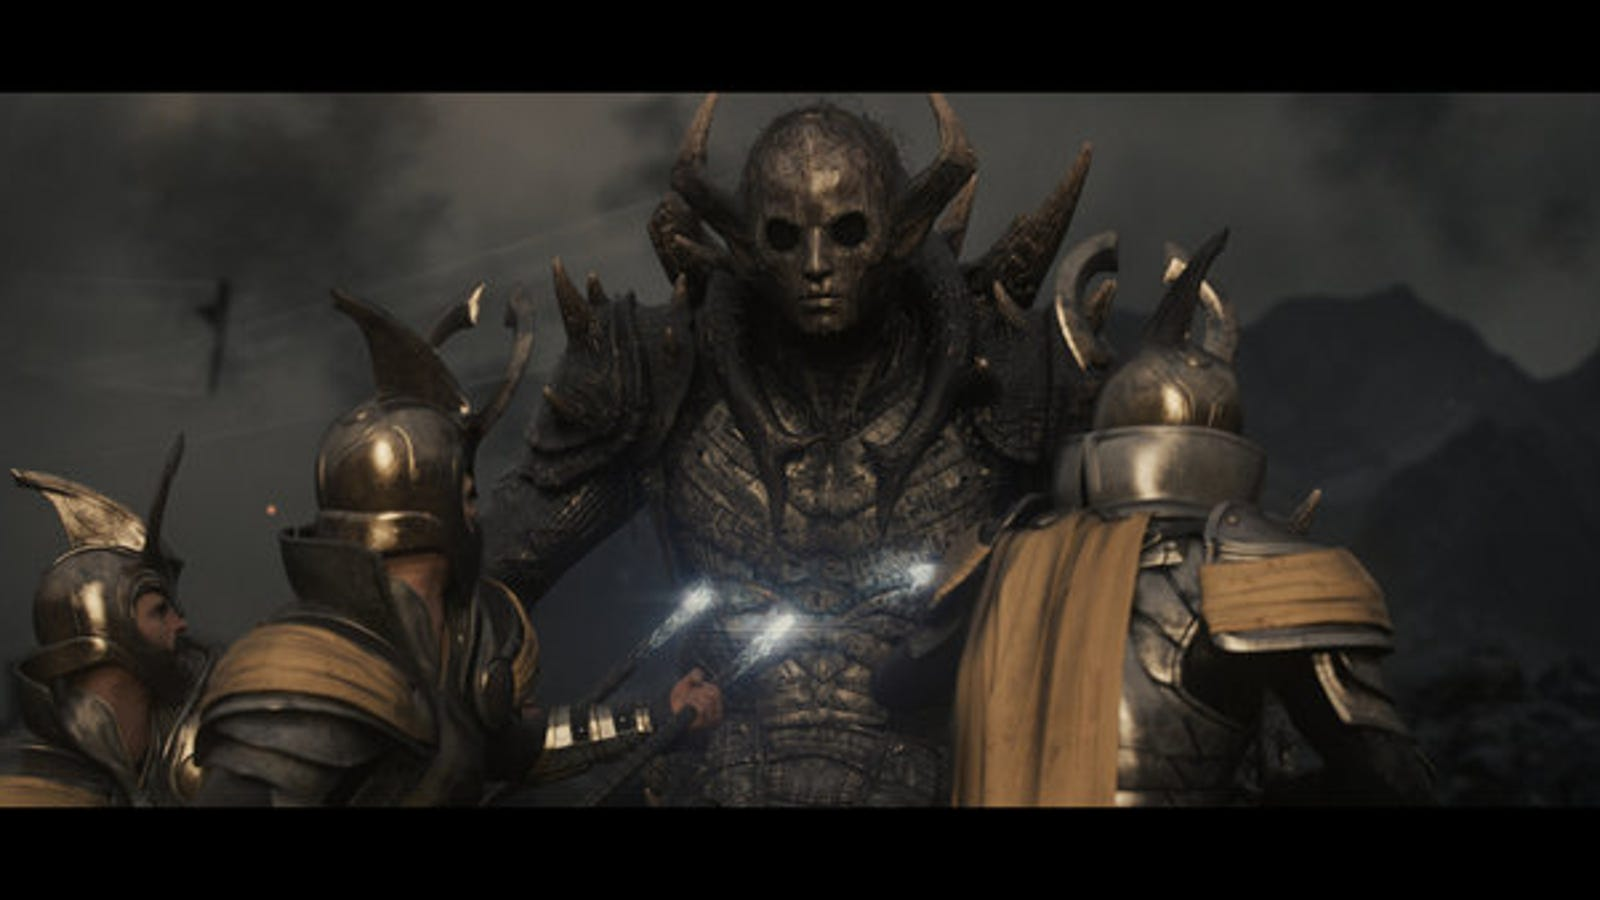 Watch the visual effects reel of Thor: The Dark World's prologue